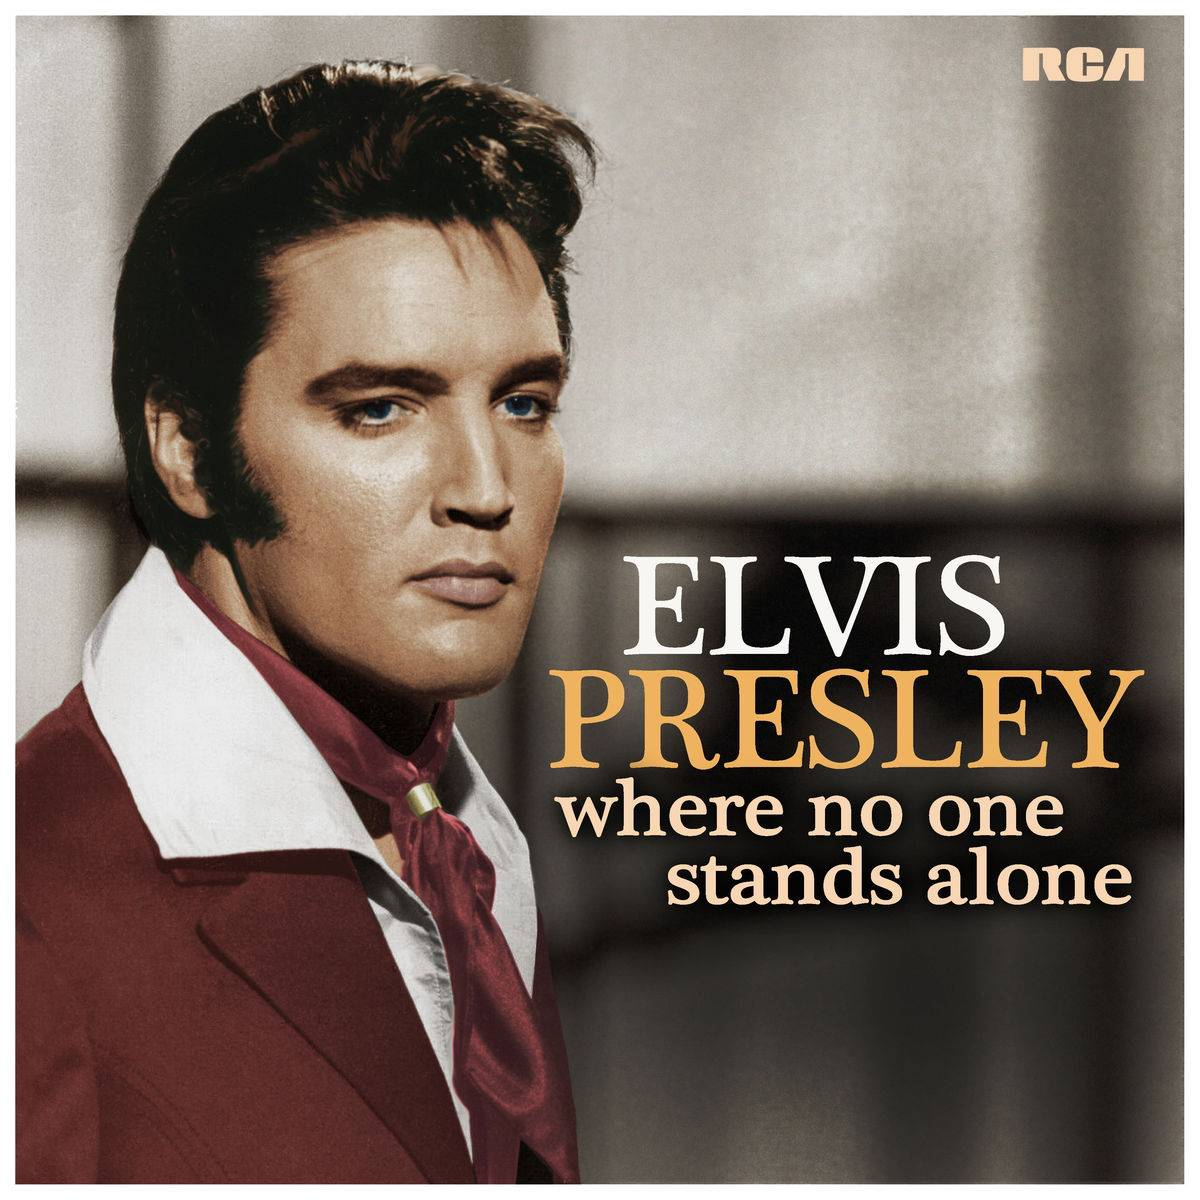 Elvis Presley - Where No One Stands Alone (Remastered) (1967/2018) [Official Digital Download 24/96]